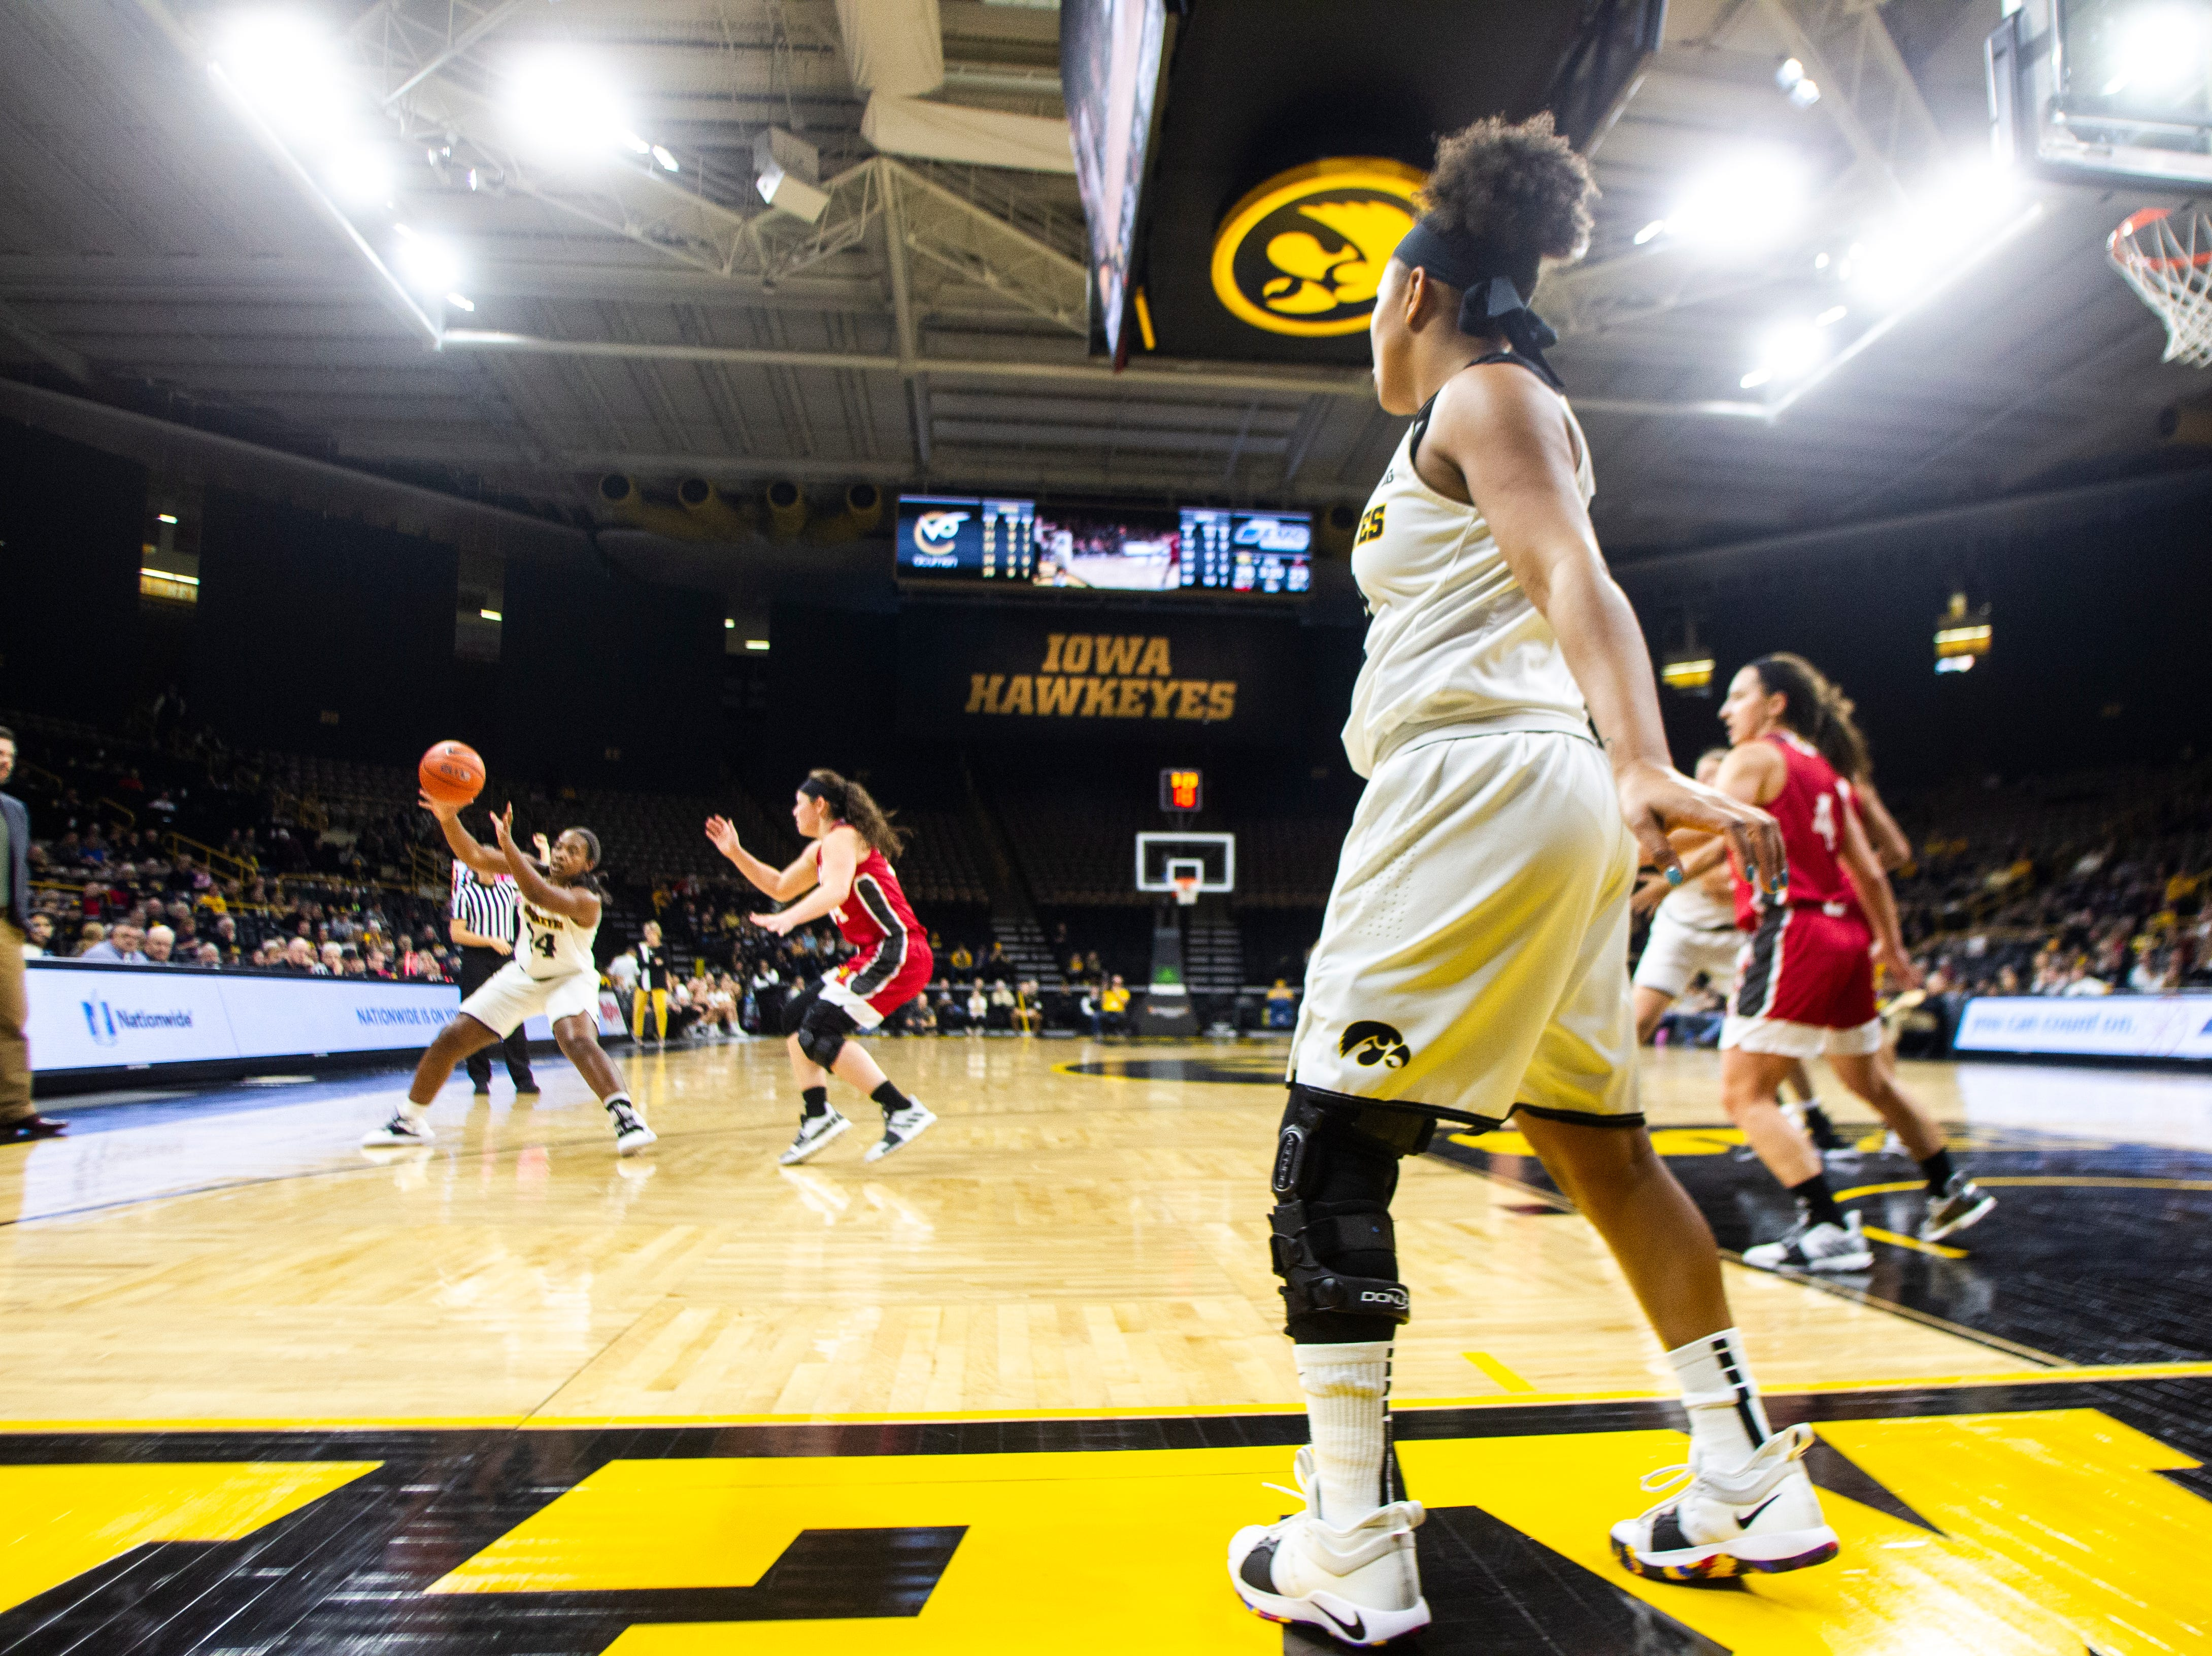 Iowa guard Tania Davis (11) inbounds the ball to Iowa guard Zion Sanders (24) during a NCAA women's basketball game on Saturday, Dec. 8, 2018, at Carver-Hawkeye Arena in Iowa City.